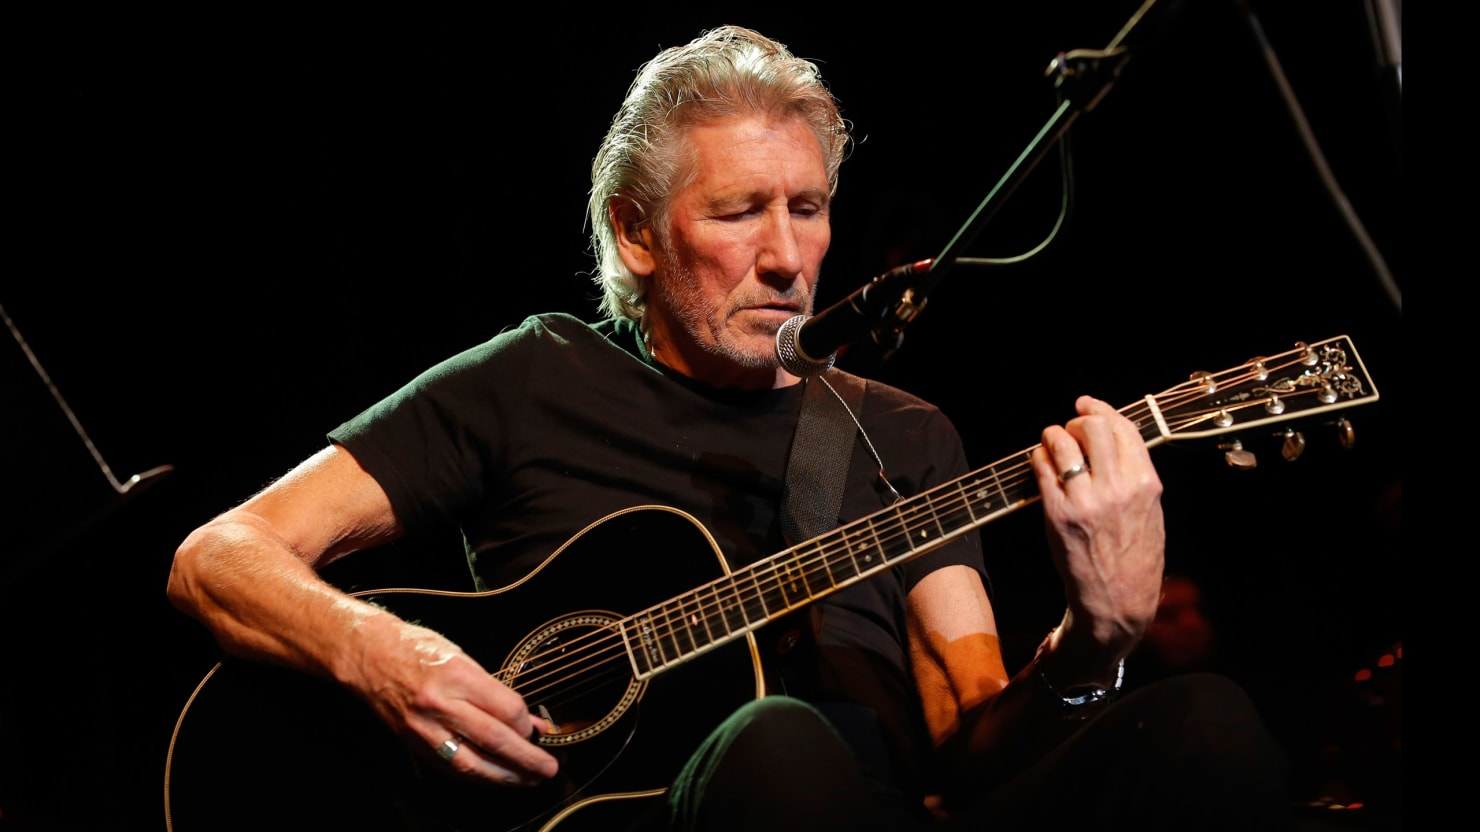 pink floyd s roger waters compares israel to the nazis. Black Bedroom Furniture Sets. Home Design Ideas